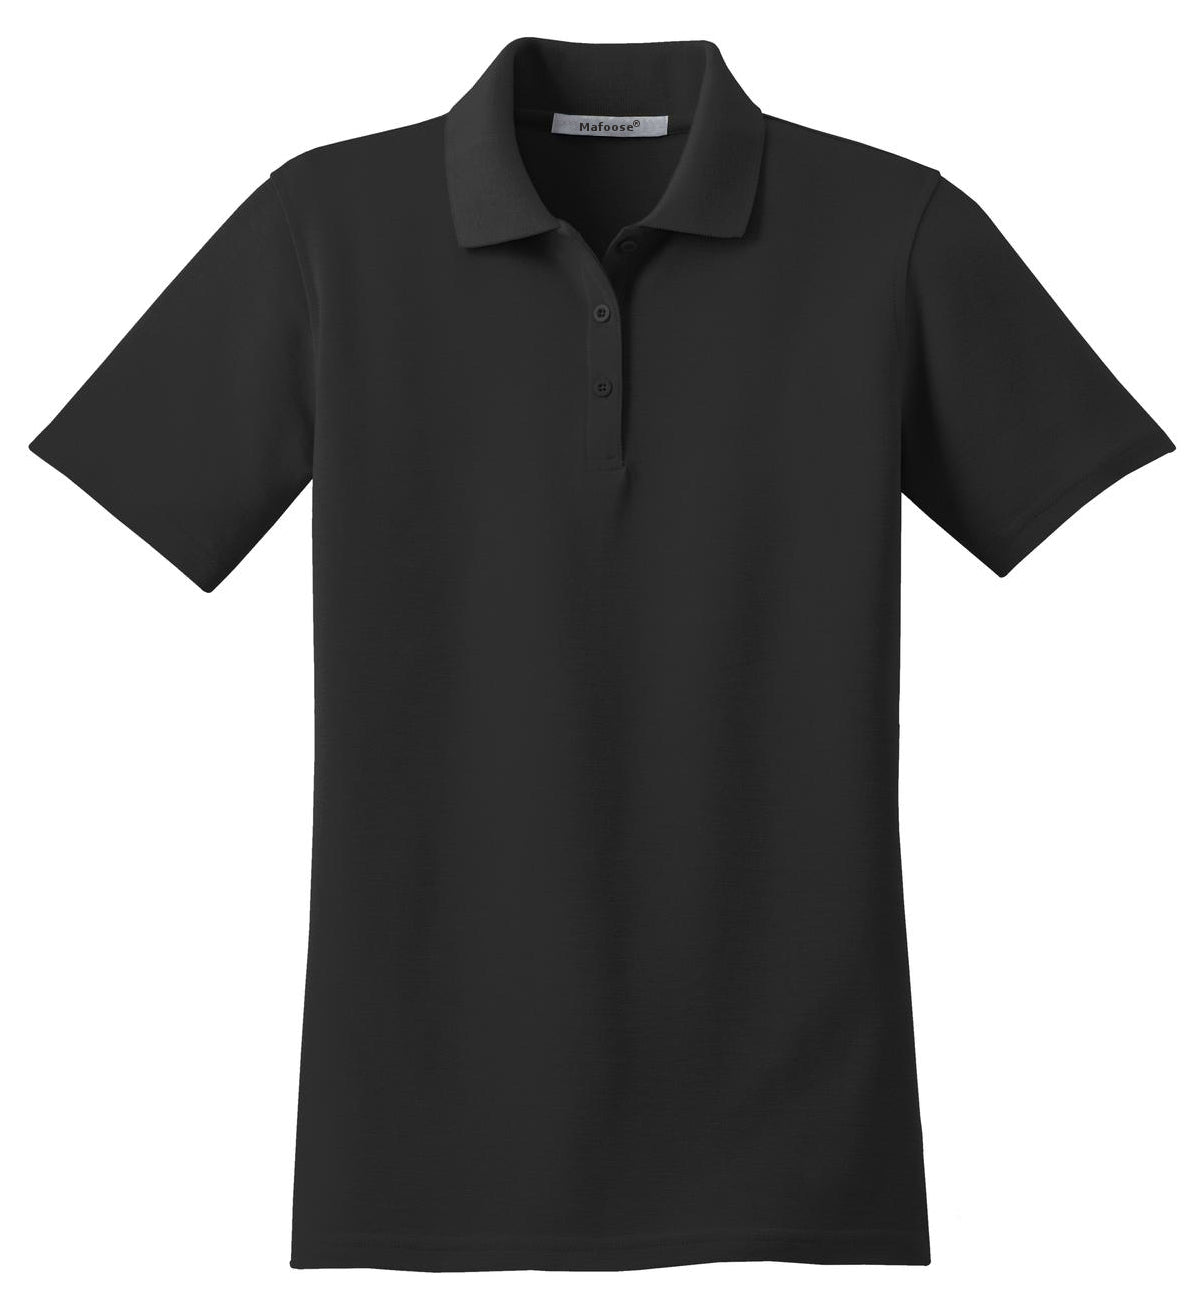 Mafoose Women's Stain Resistant Polo Shirt Black-Front